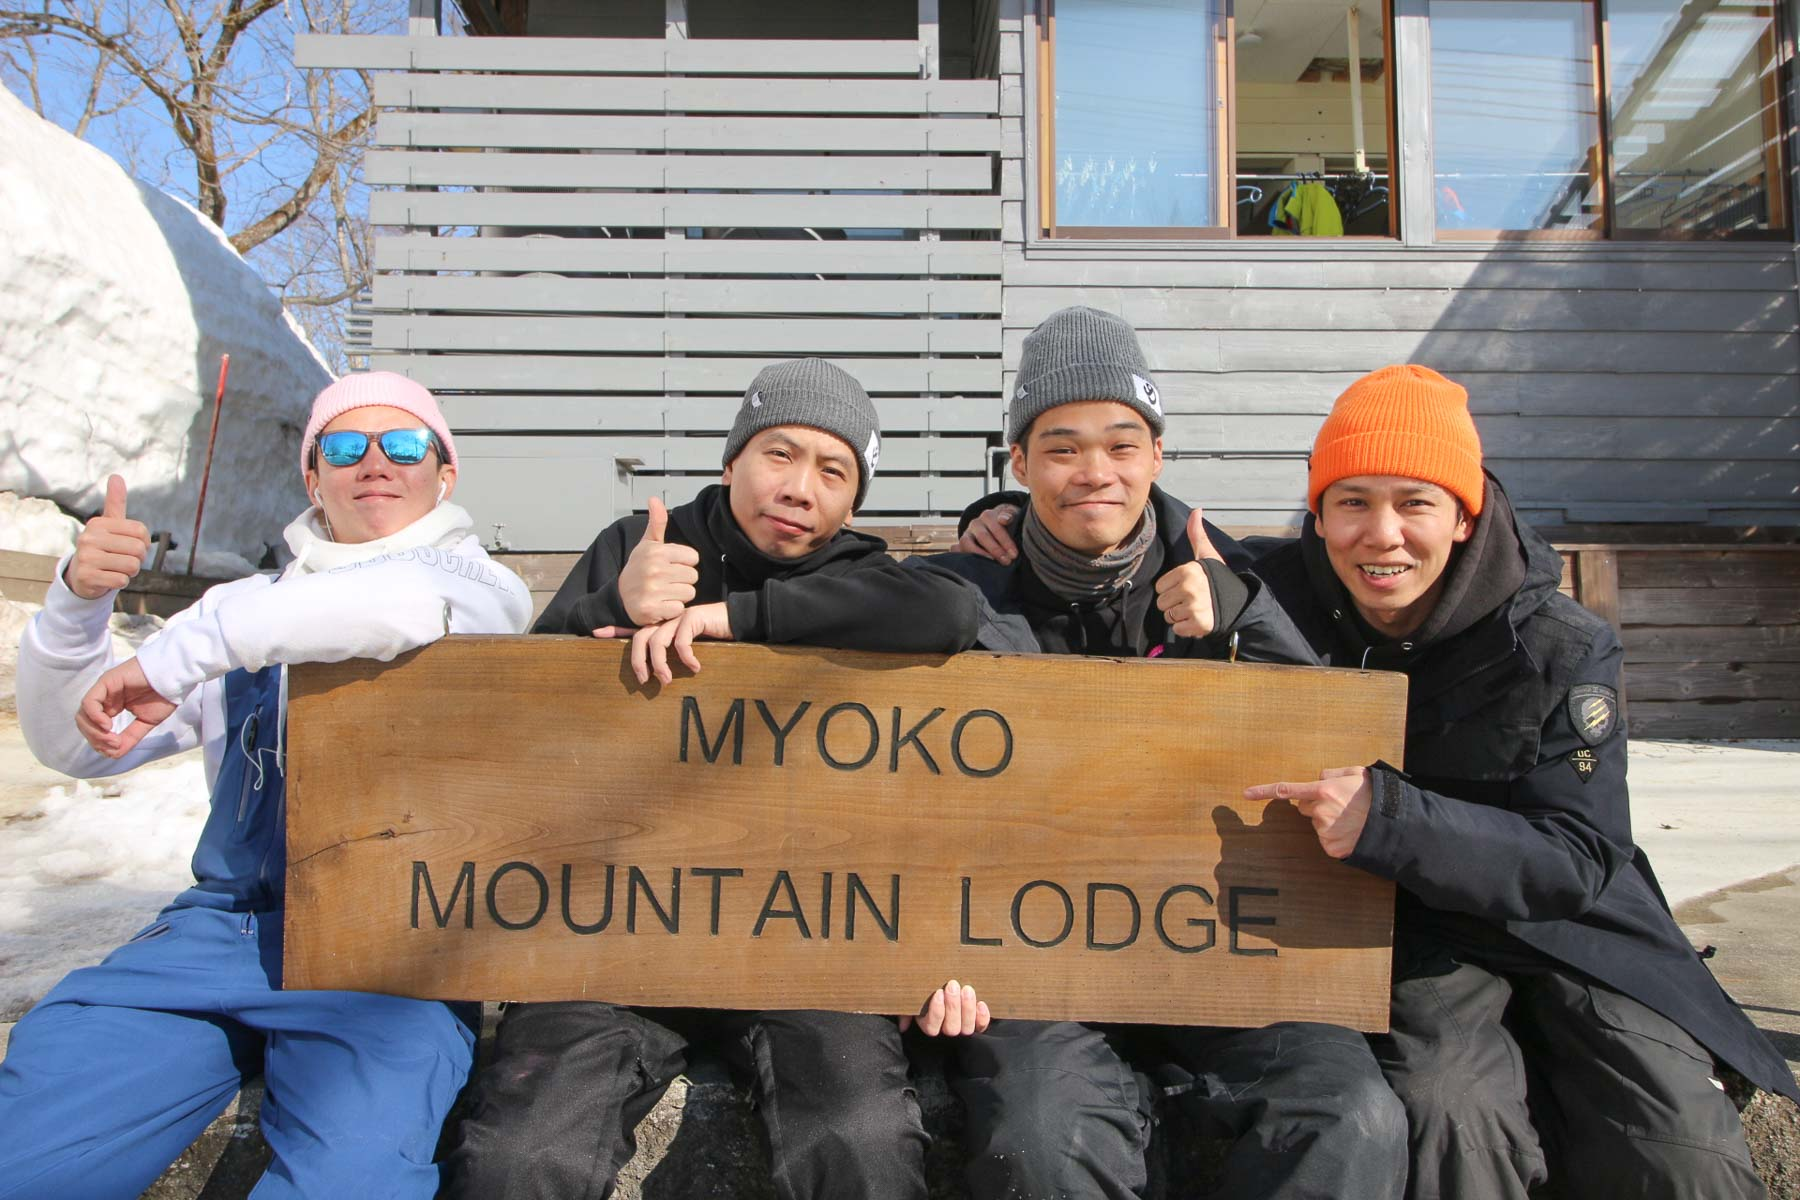 The snowboard training squad from Hong kong, Steve,Joe, Blackson & Shun.